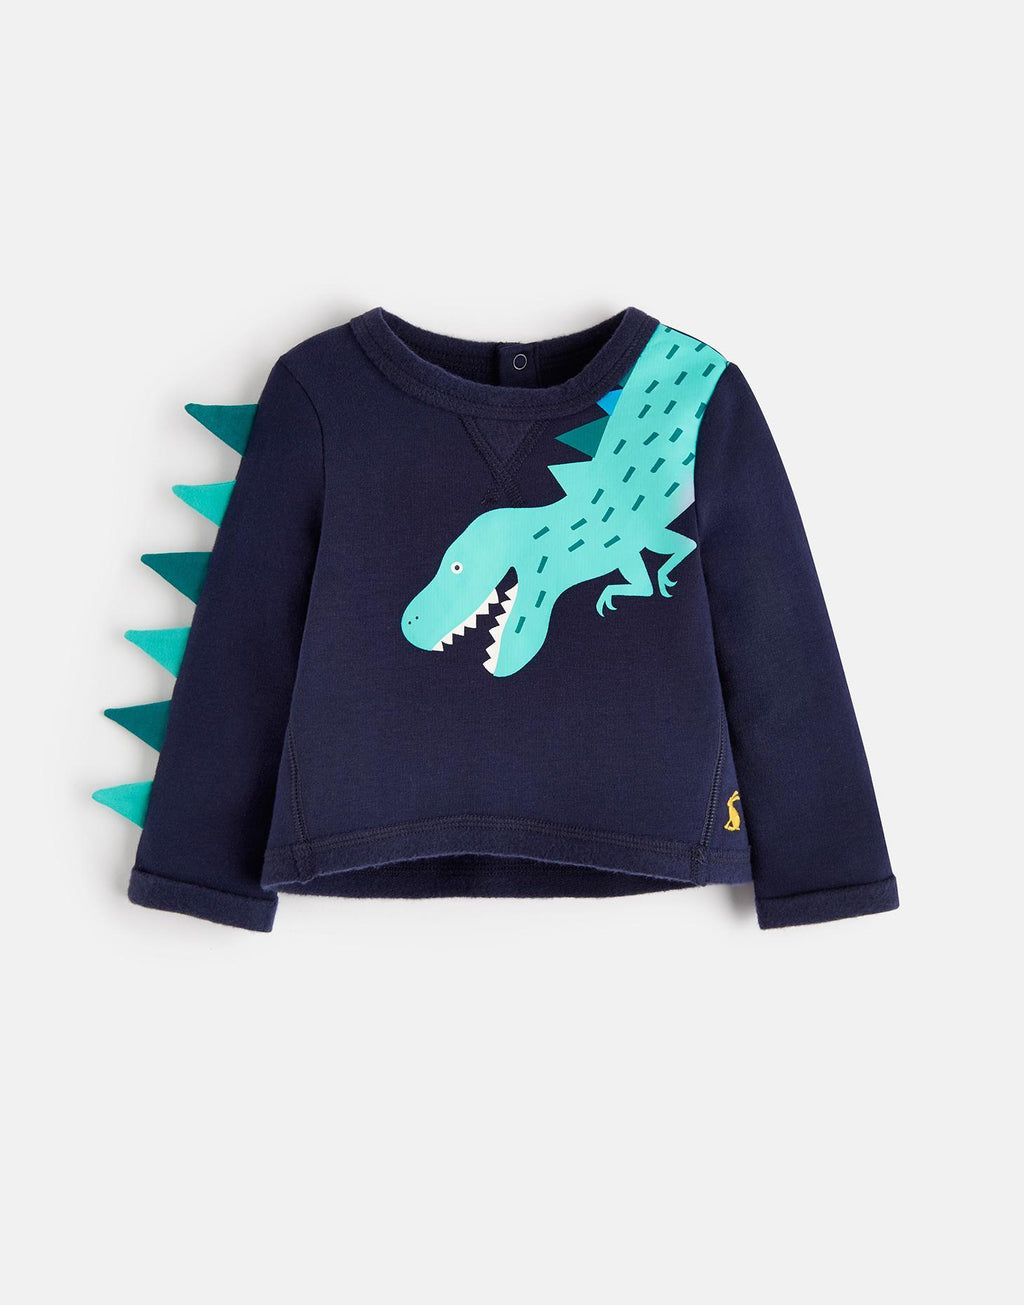 Joules Fleece Dino Shirt